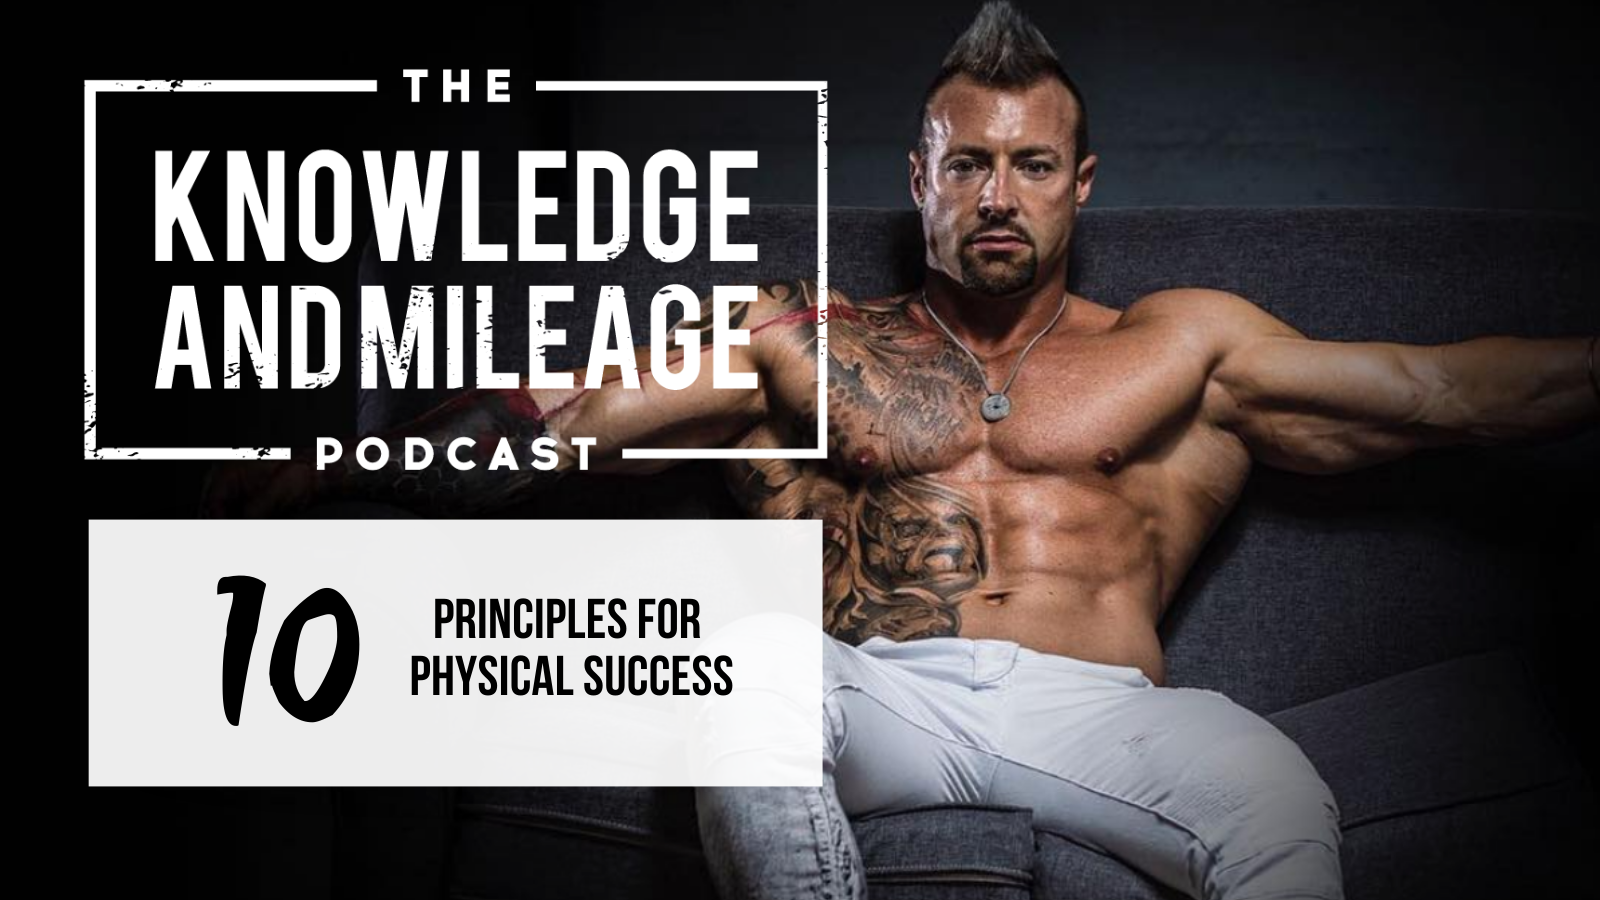 EP 10: My Principles for Physical Success